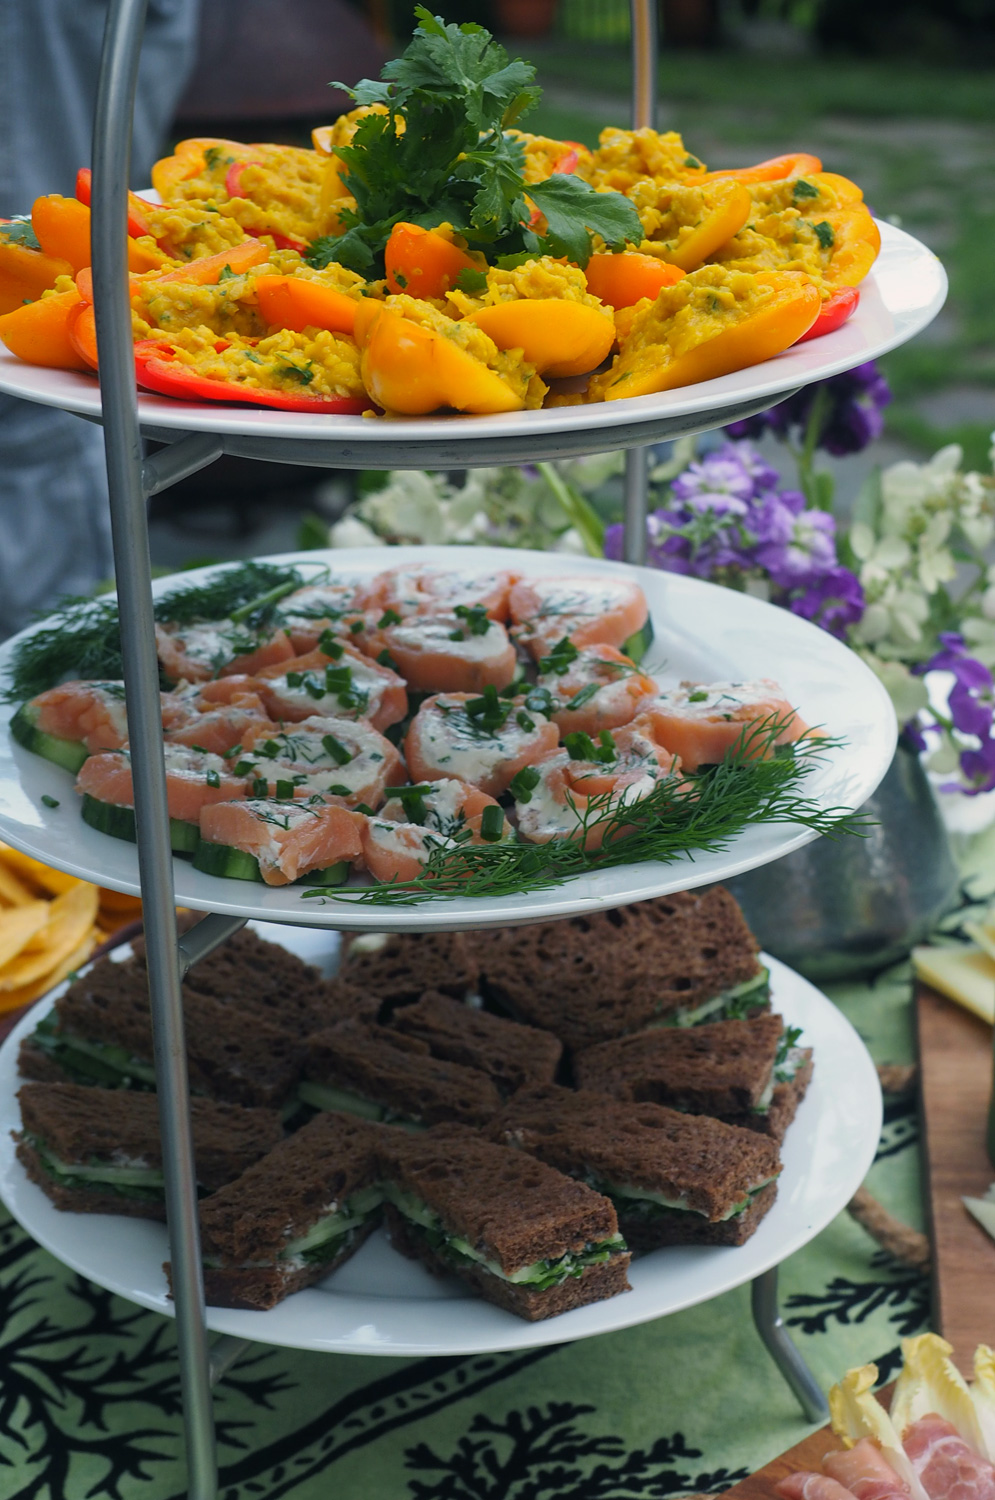 The tower of offerings. Chick Pea Mash,  Salmon Roll Cucumber Rounds  and  Watercress, Herb Butter Tea Sandwiches .